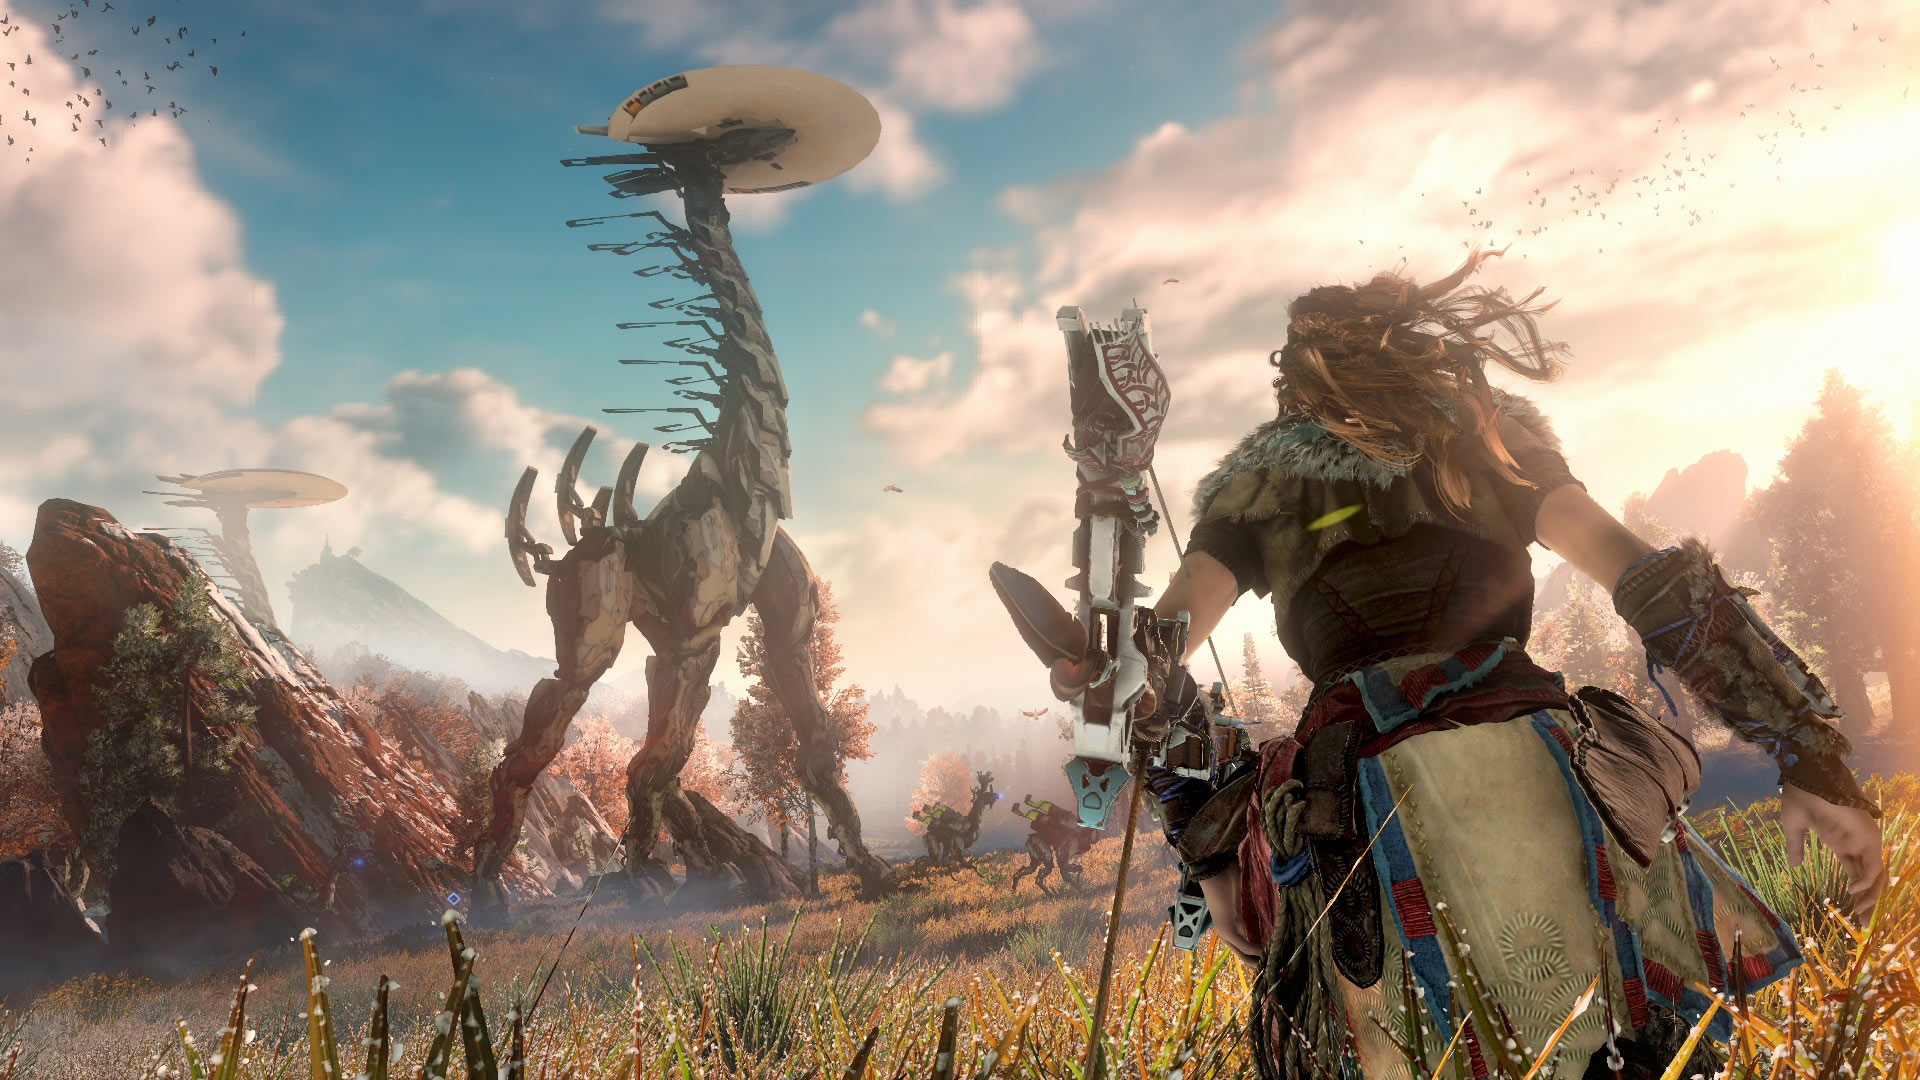 Horizon Zero Dawn Playstation 4 Screenshot of massive machines